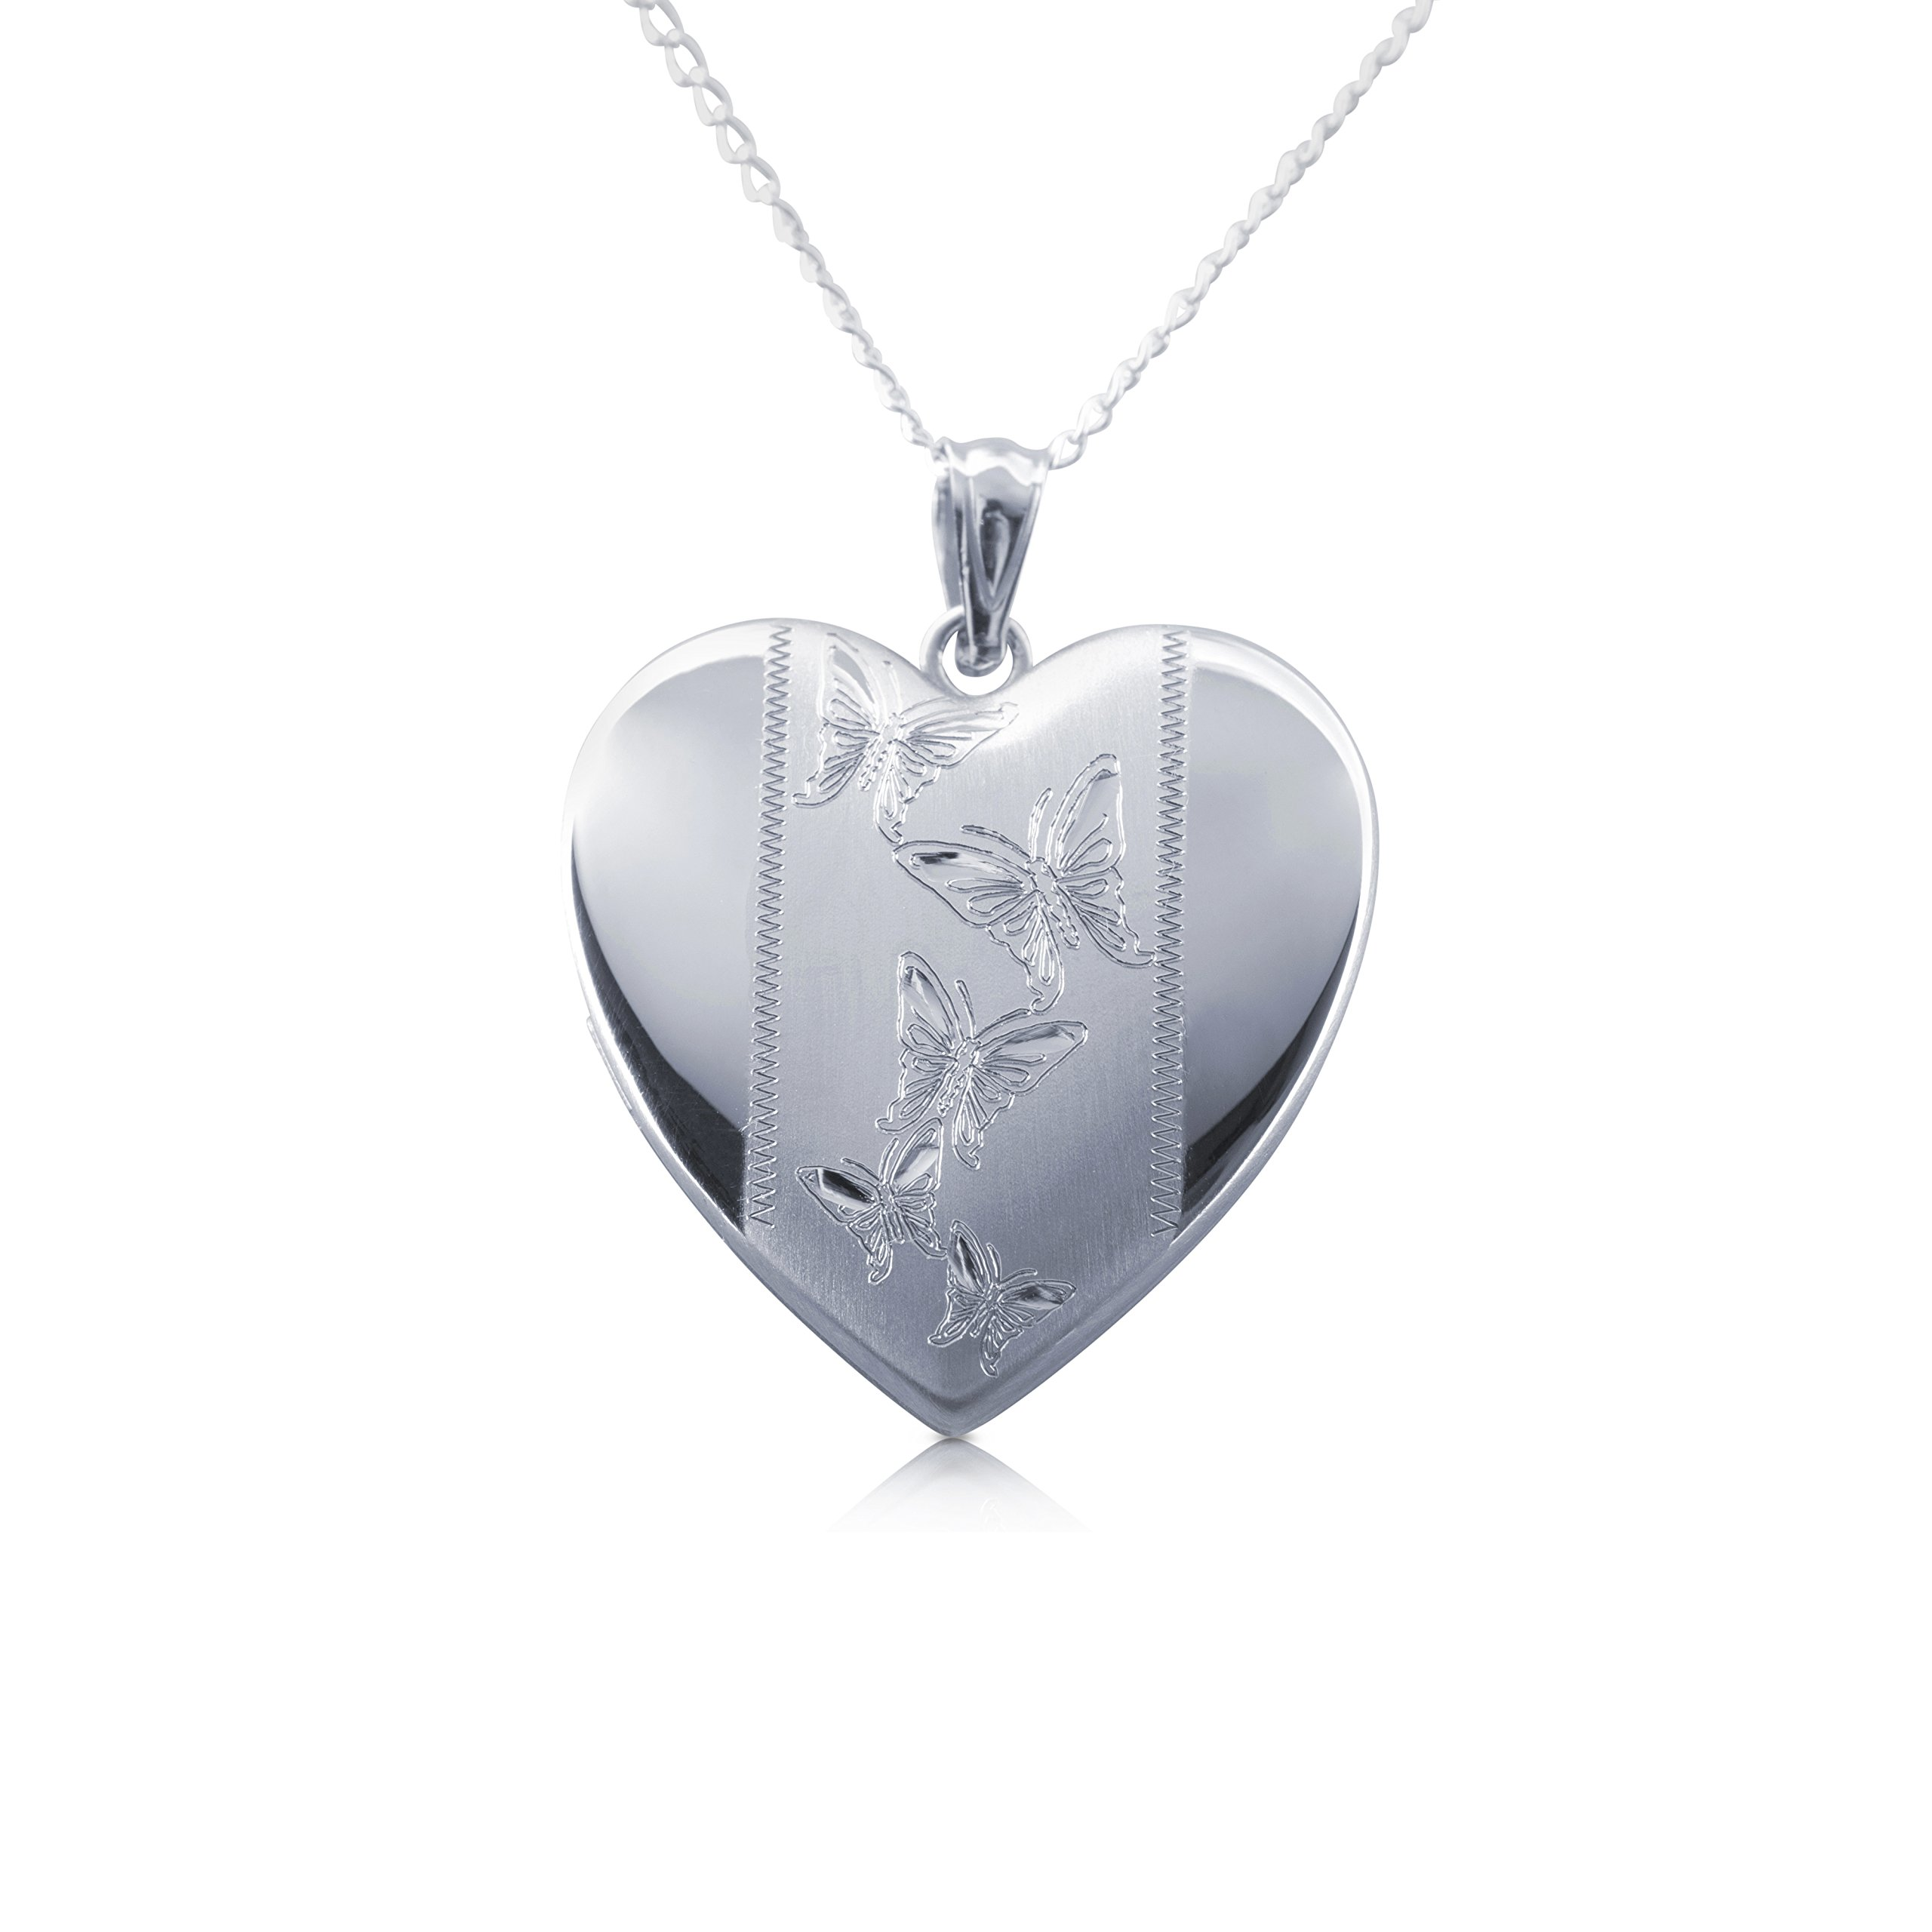 Butterfly Heart Photo Locket Pendant, Sterling Silver with Necklace Chain by Silver on the Rocks